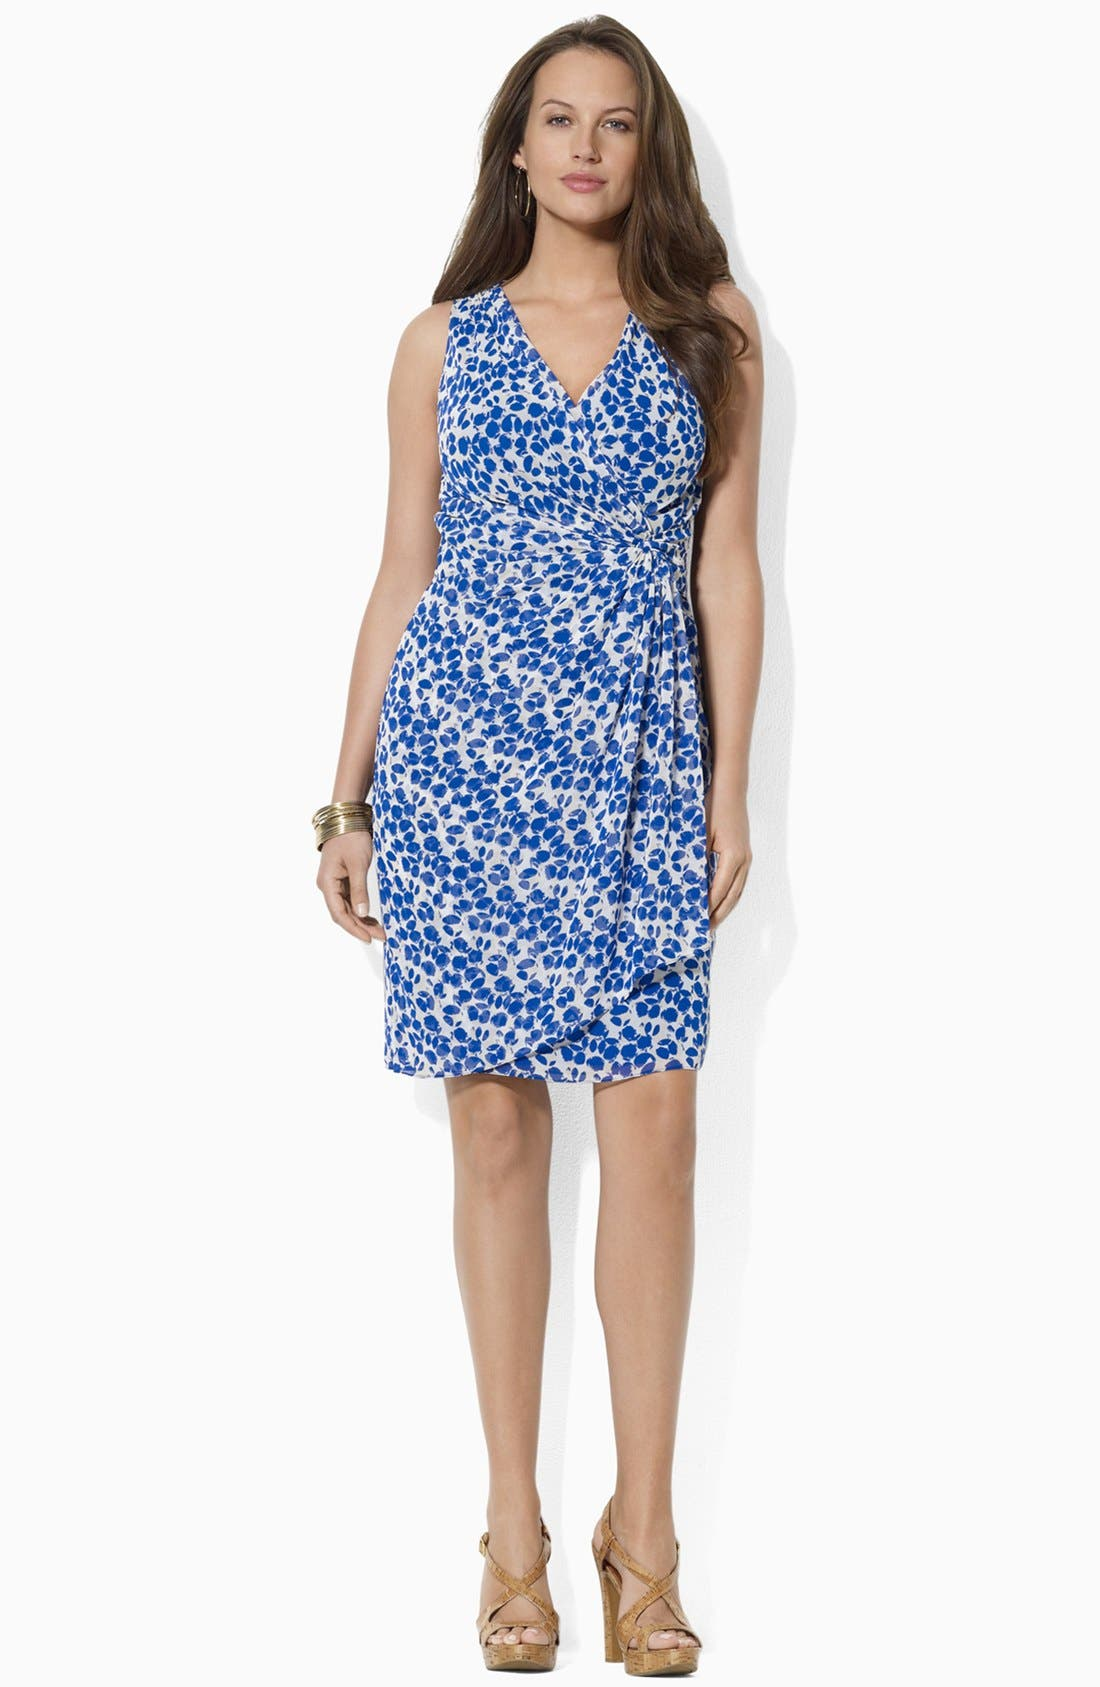 Alternate Image 1 Selected - Lauren Ralph Lauren Print Faux Wrap Chiffon Dress (Plus Size)